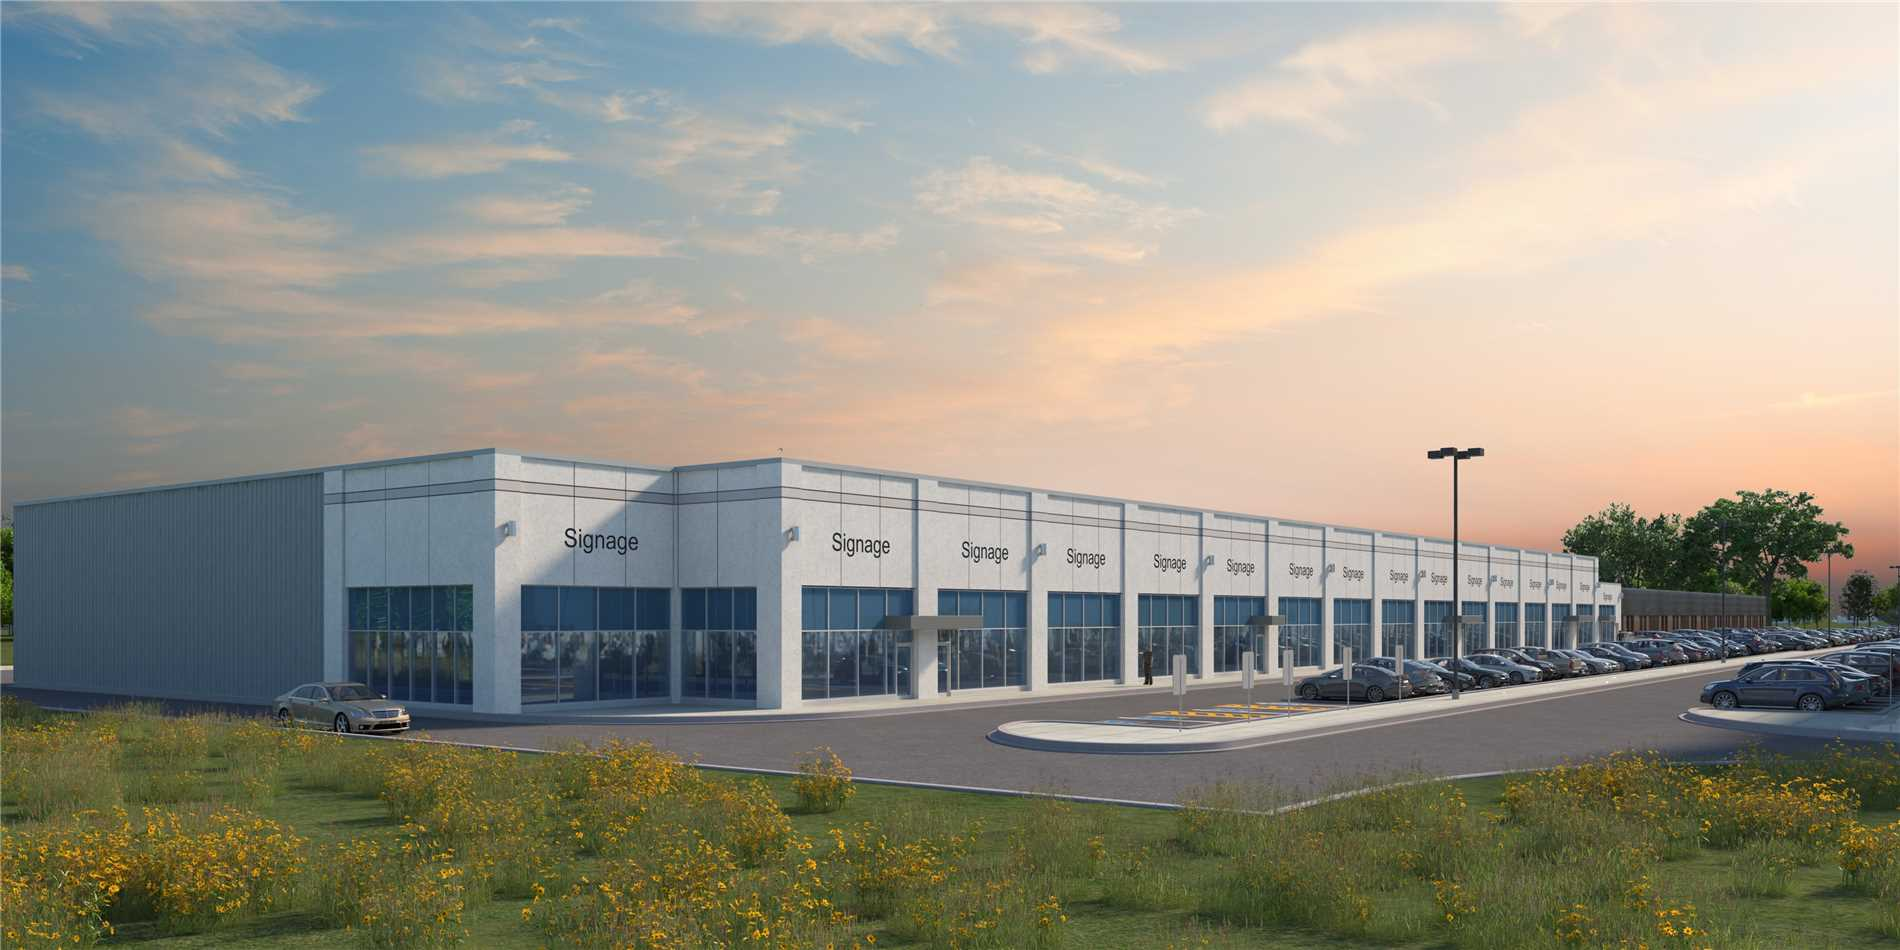 New Expansion On Existing Multi-Tenanted Industrial Building - Ready For Occupancy Q4 2019 - Located Just Minutes From Highway 401/412 - Ideal For Warehousing Or Light Manufacturing Uses - Modern Architectural & Precast Construction - Various Size Configurations Up To 58,336 Sq. Ft. - Office Area Built To Suit - Efficient Loading Capabilities - Ample Parking - 24' Clear